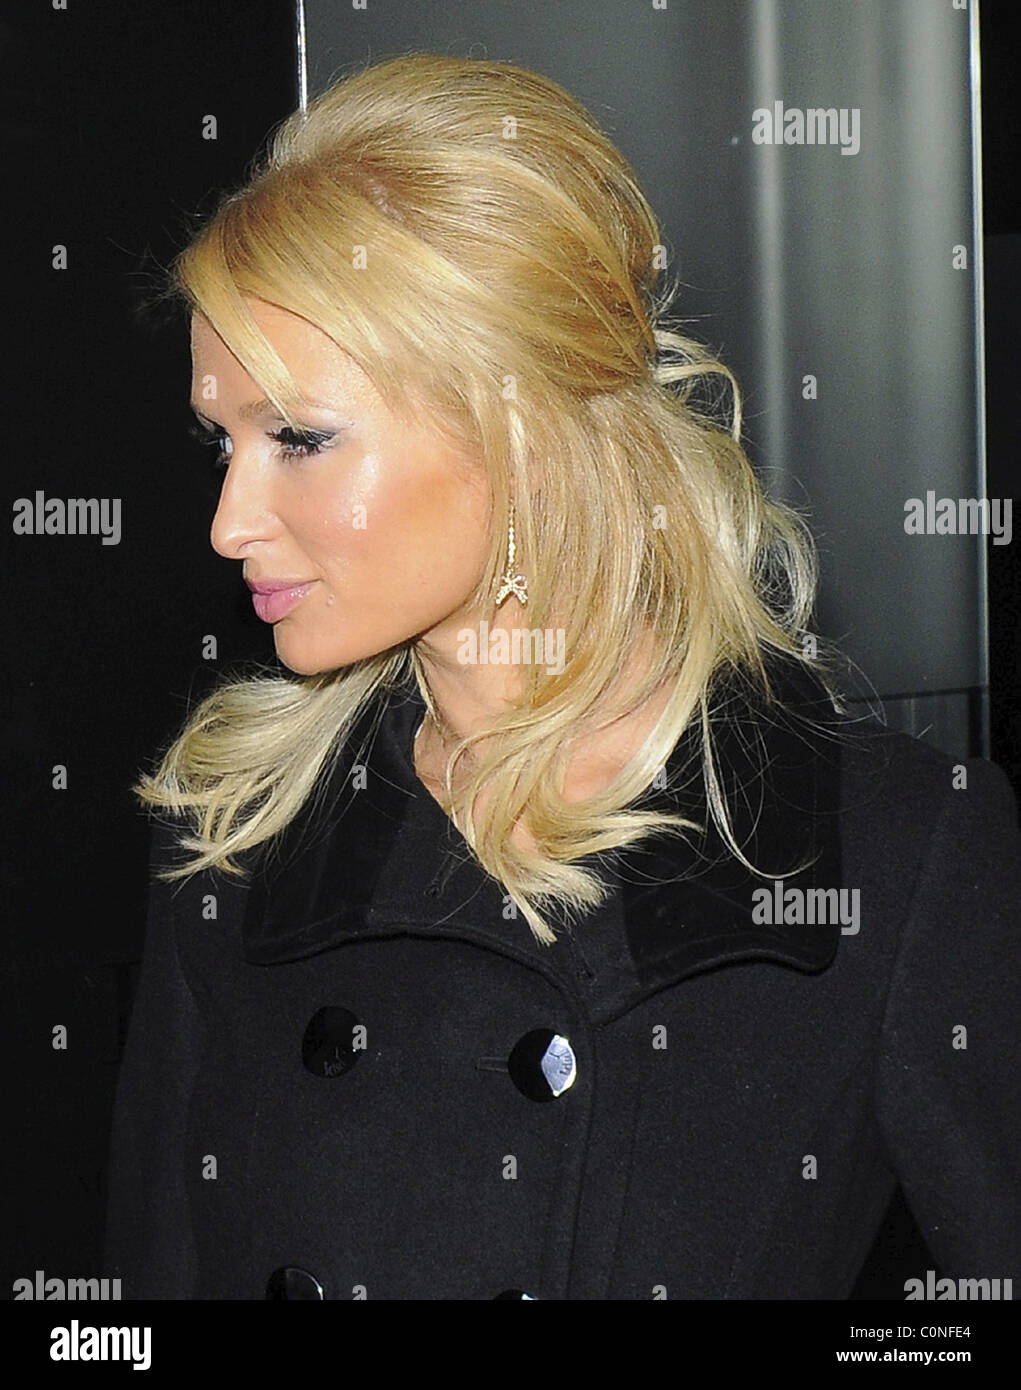 Paris Hilton Wearing Some Hideous Hair Extensions Possibly From Her